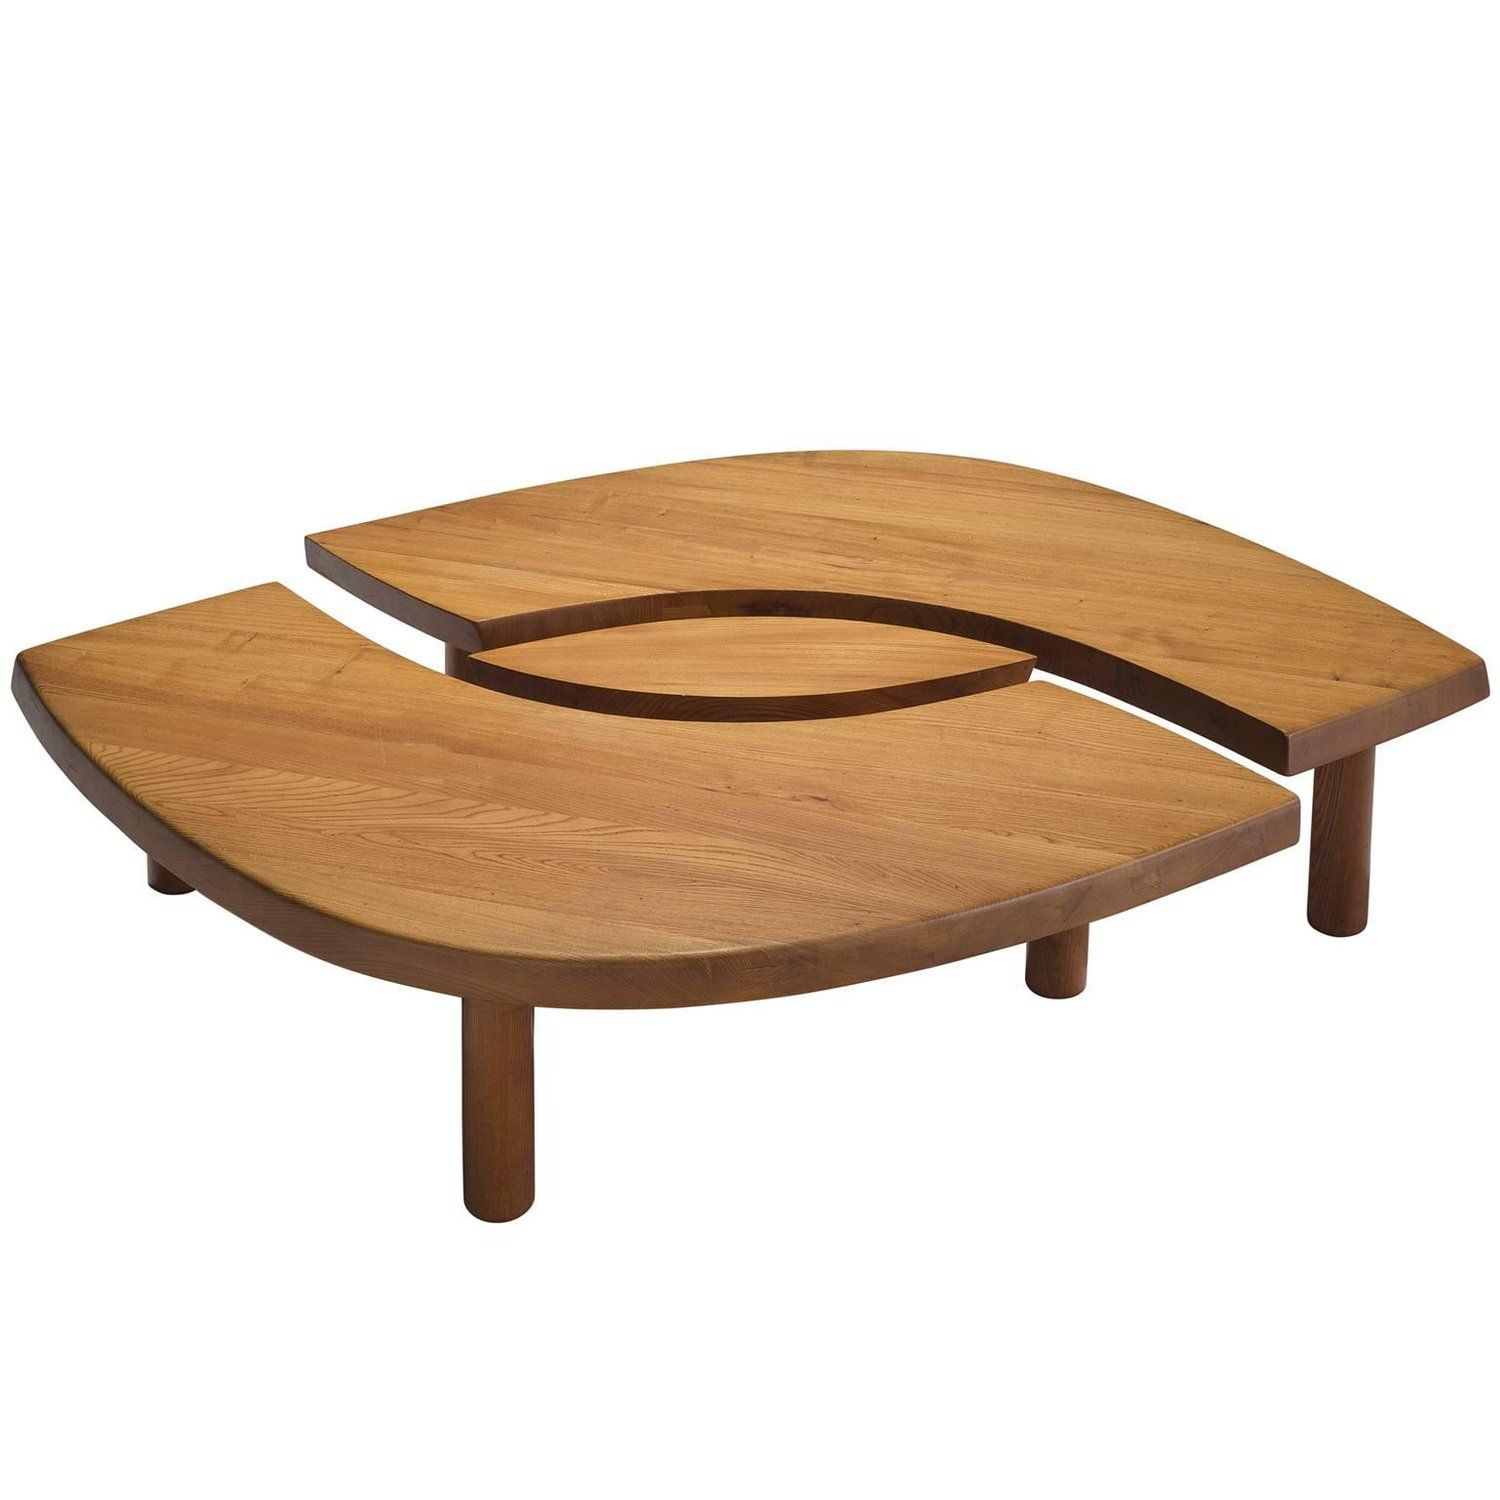 Large Pierre Chapo Coffee Table L Oeuil In Solid Elm T22c Coffee Table Table Wood Joints